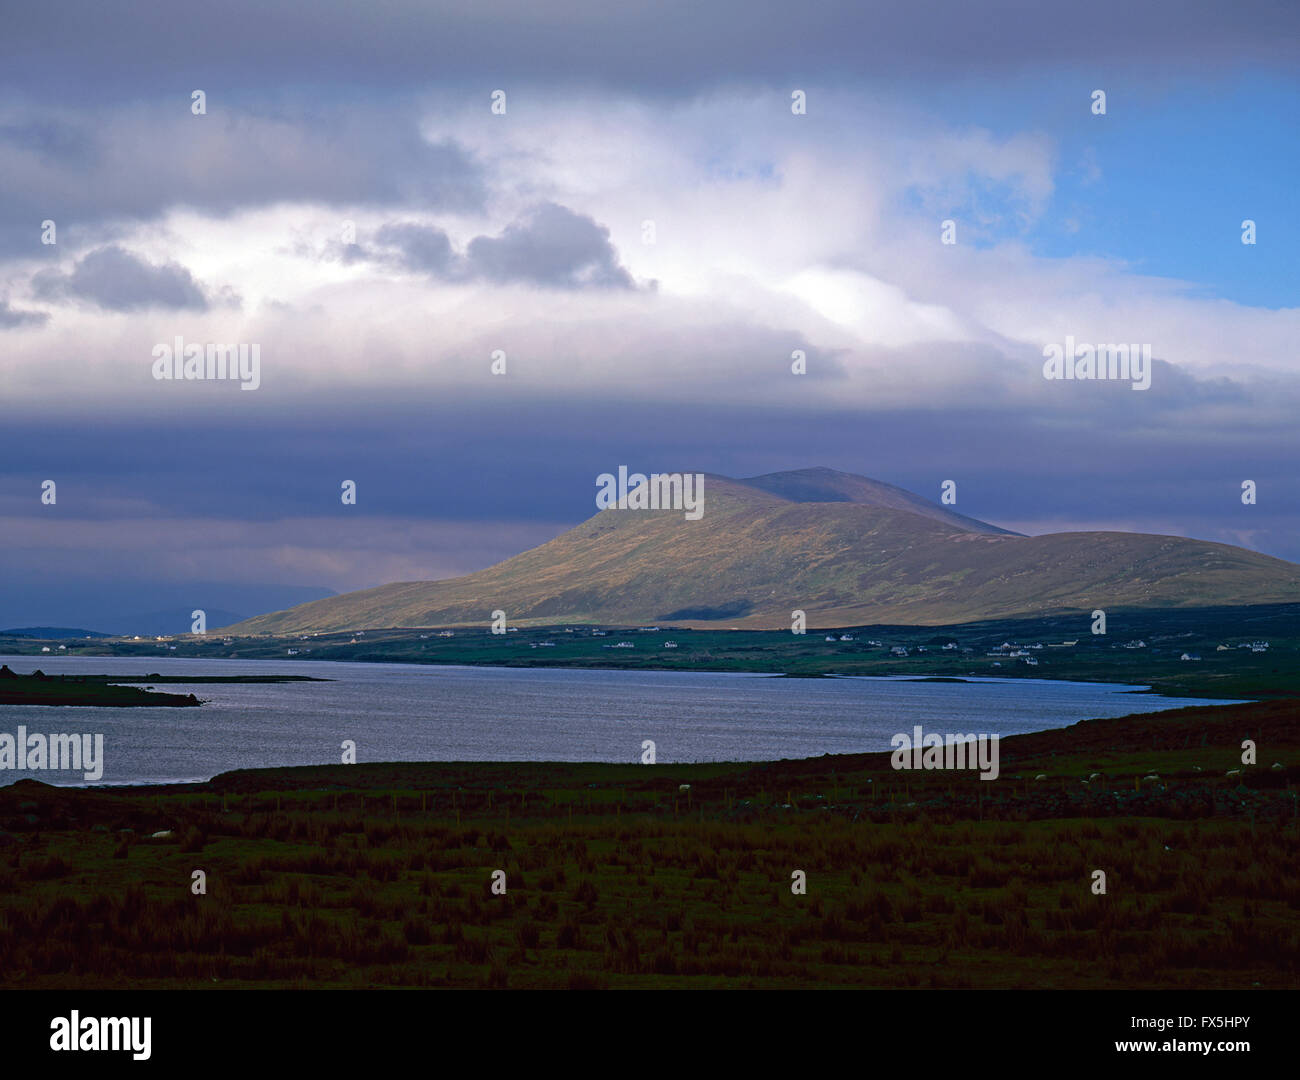 Achill Sound, sea between Achill Island and County Mayo mainland, West coast of Ireland - Stock Image